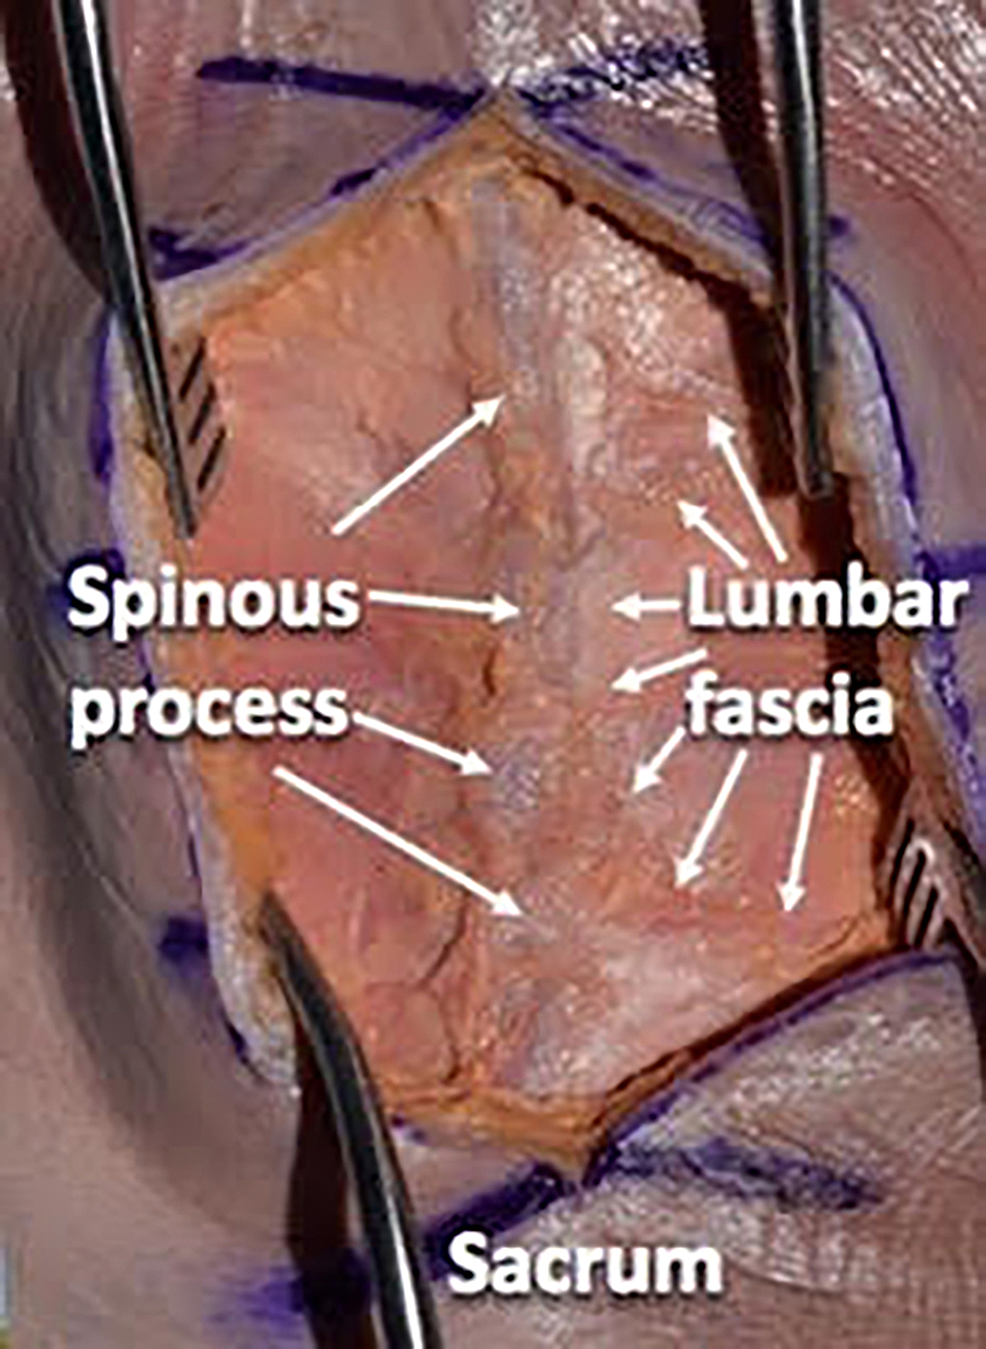 Using-a-Cobb-elevator-to-separate-the-subdermal-fat-layer-from-the-deeper-fascial-layer